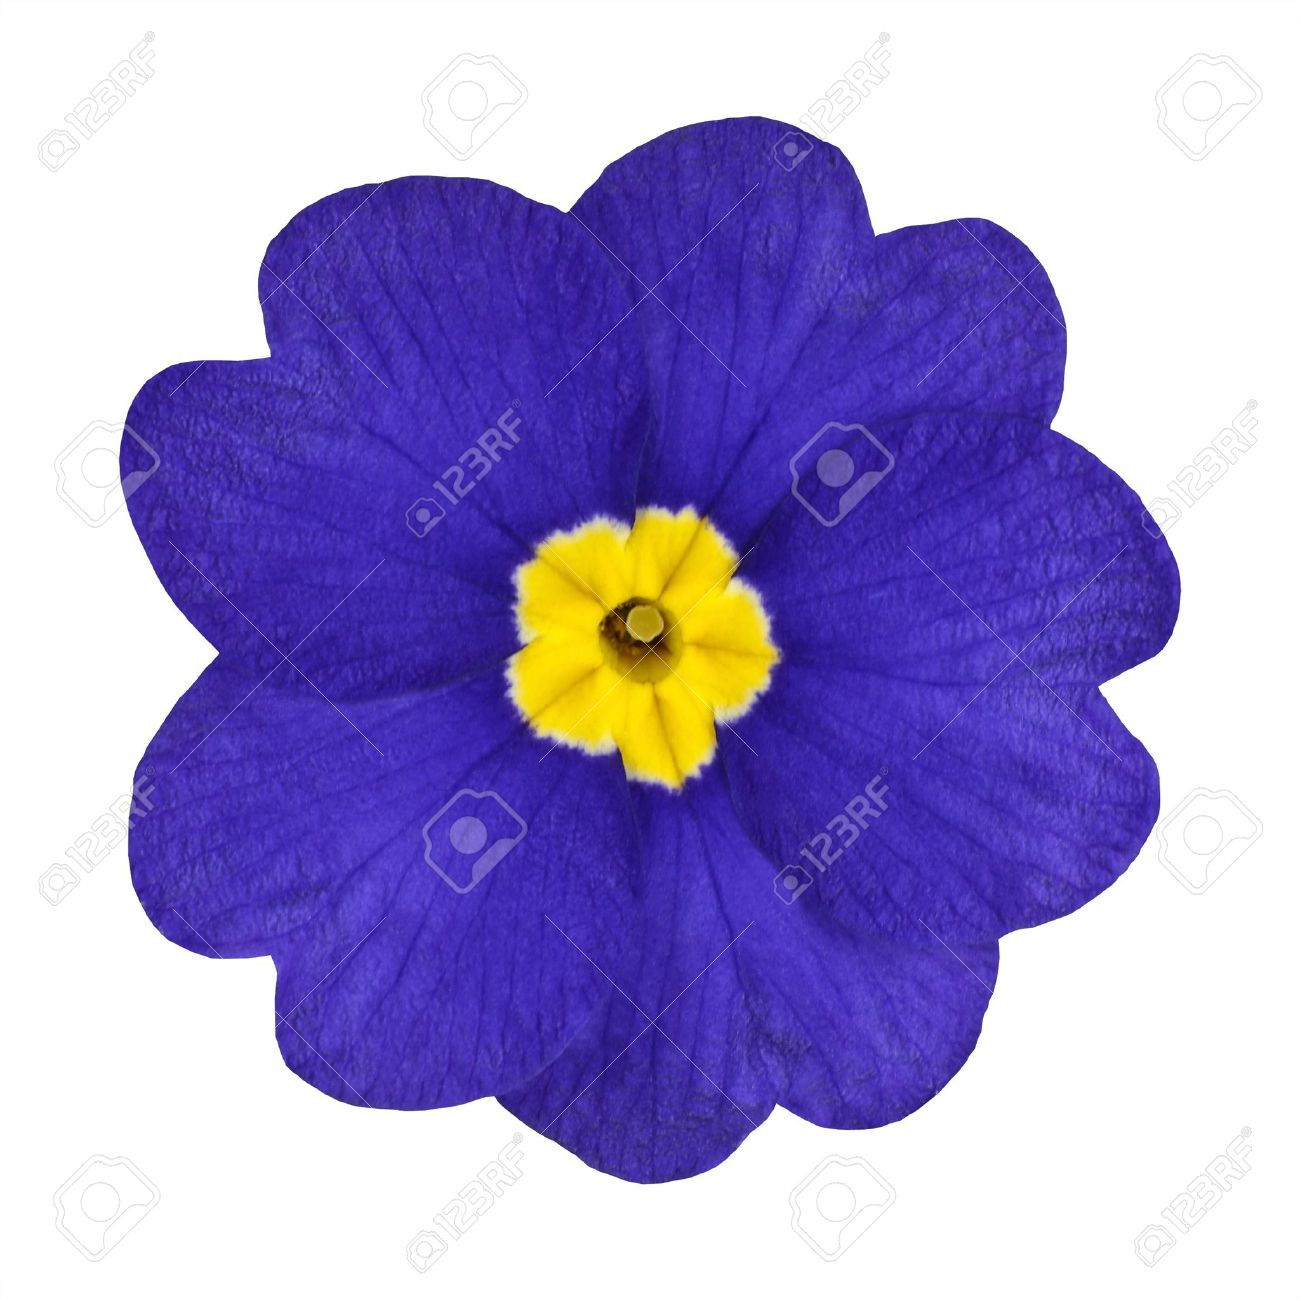 Single Blue Primrose Flower With Yellow Center Isolated On White